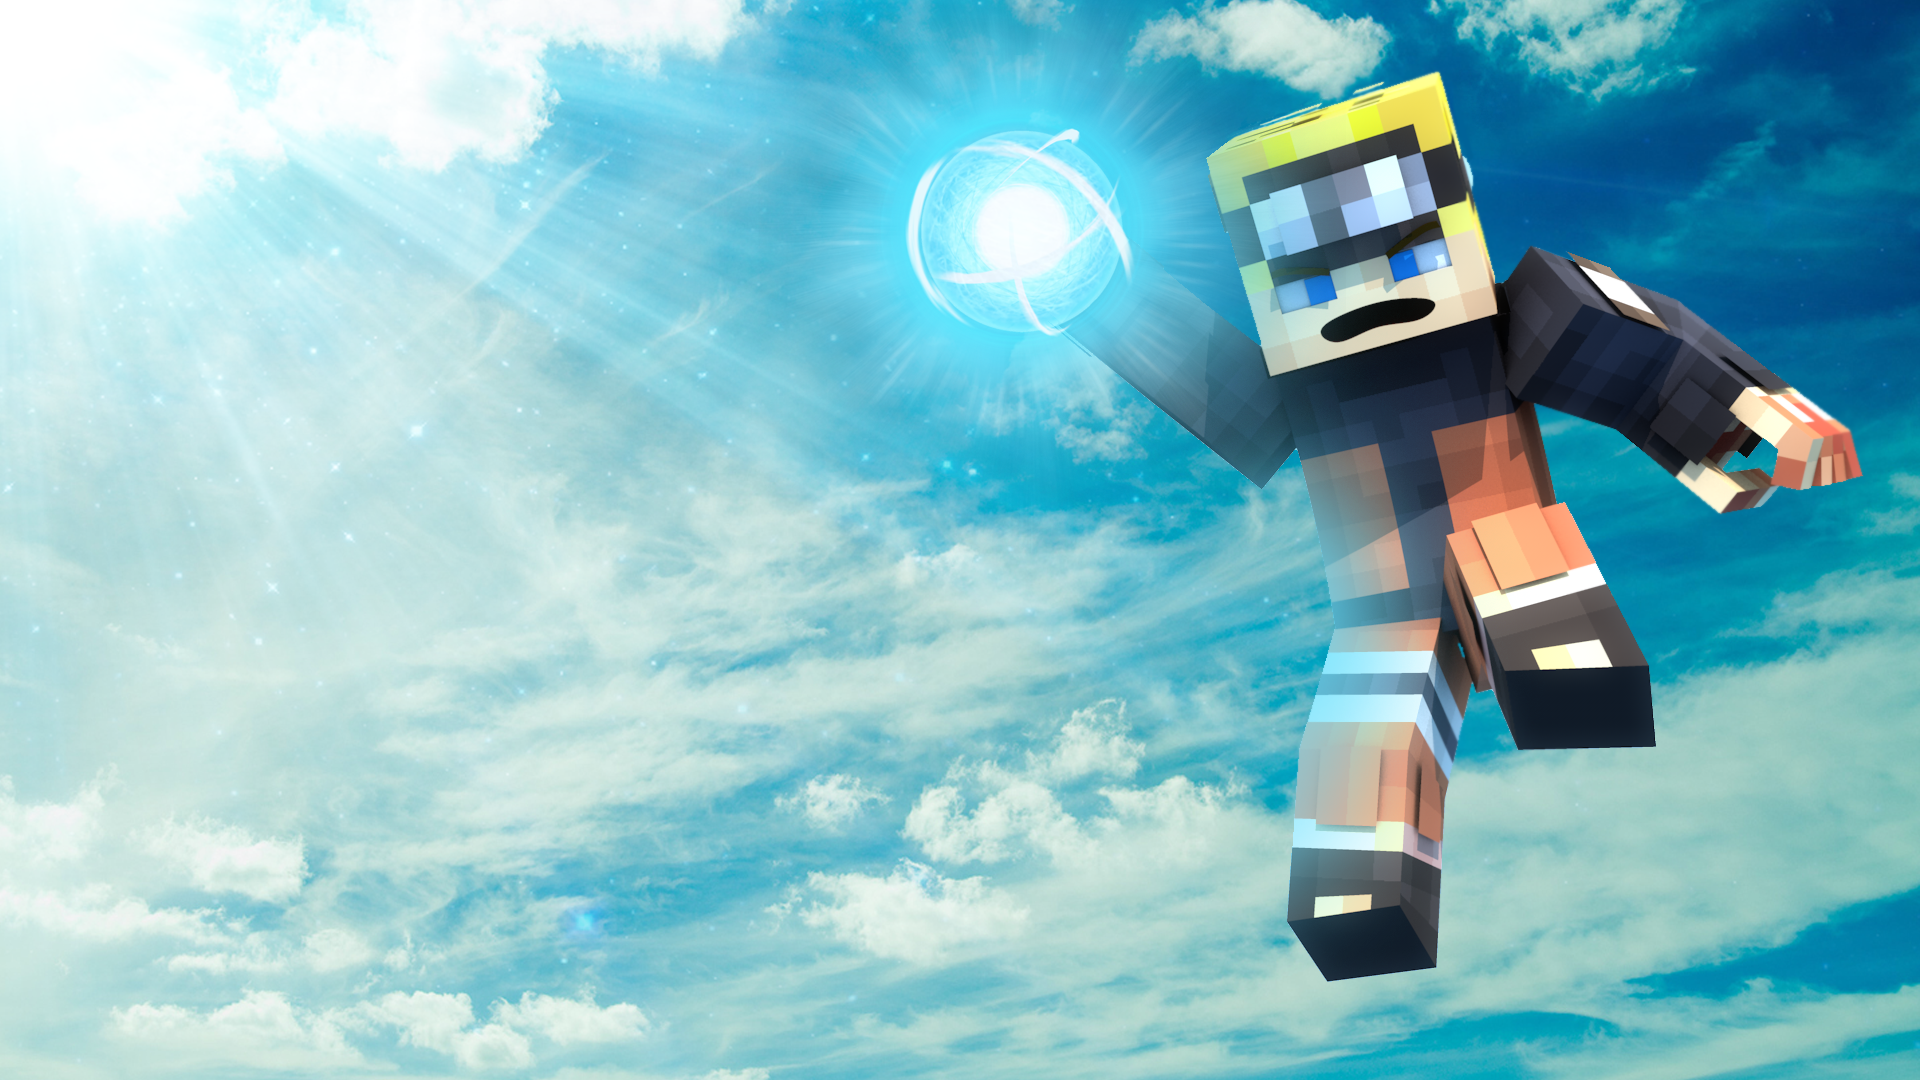 Naruto Minecraft Wallpaper By Ccltoe On Deviantart